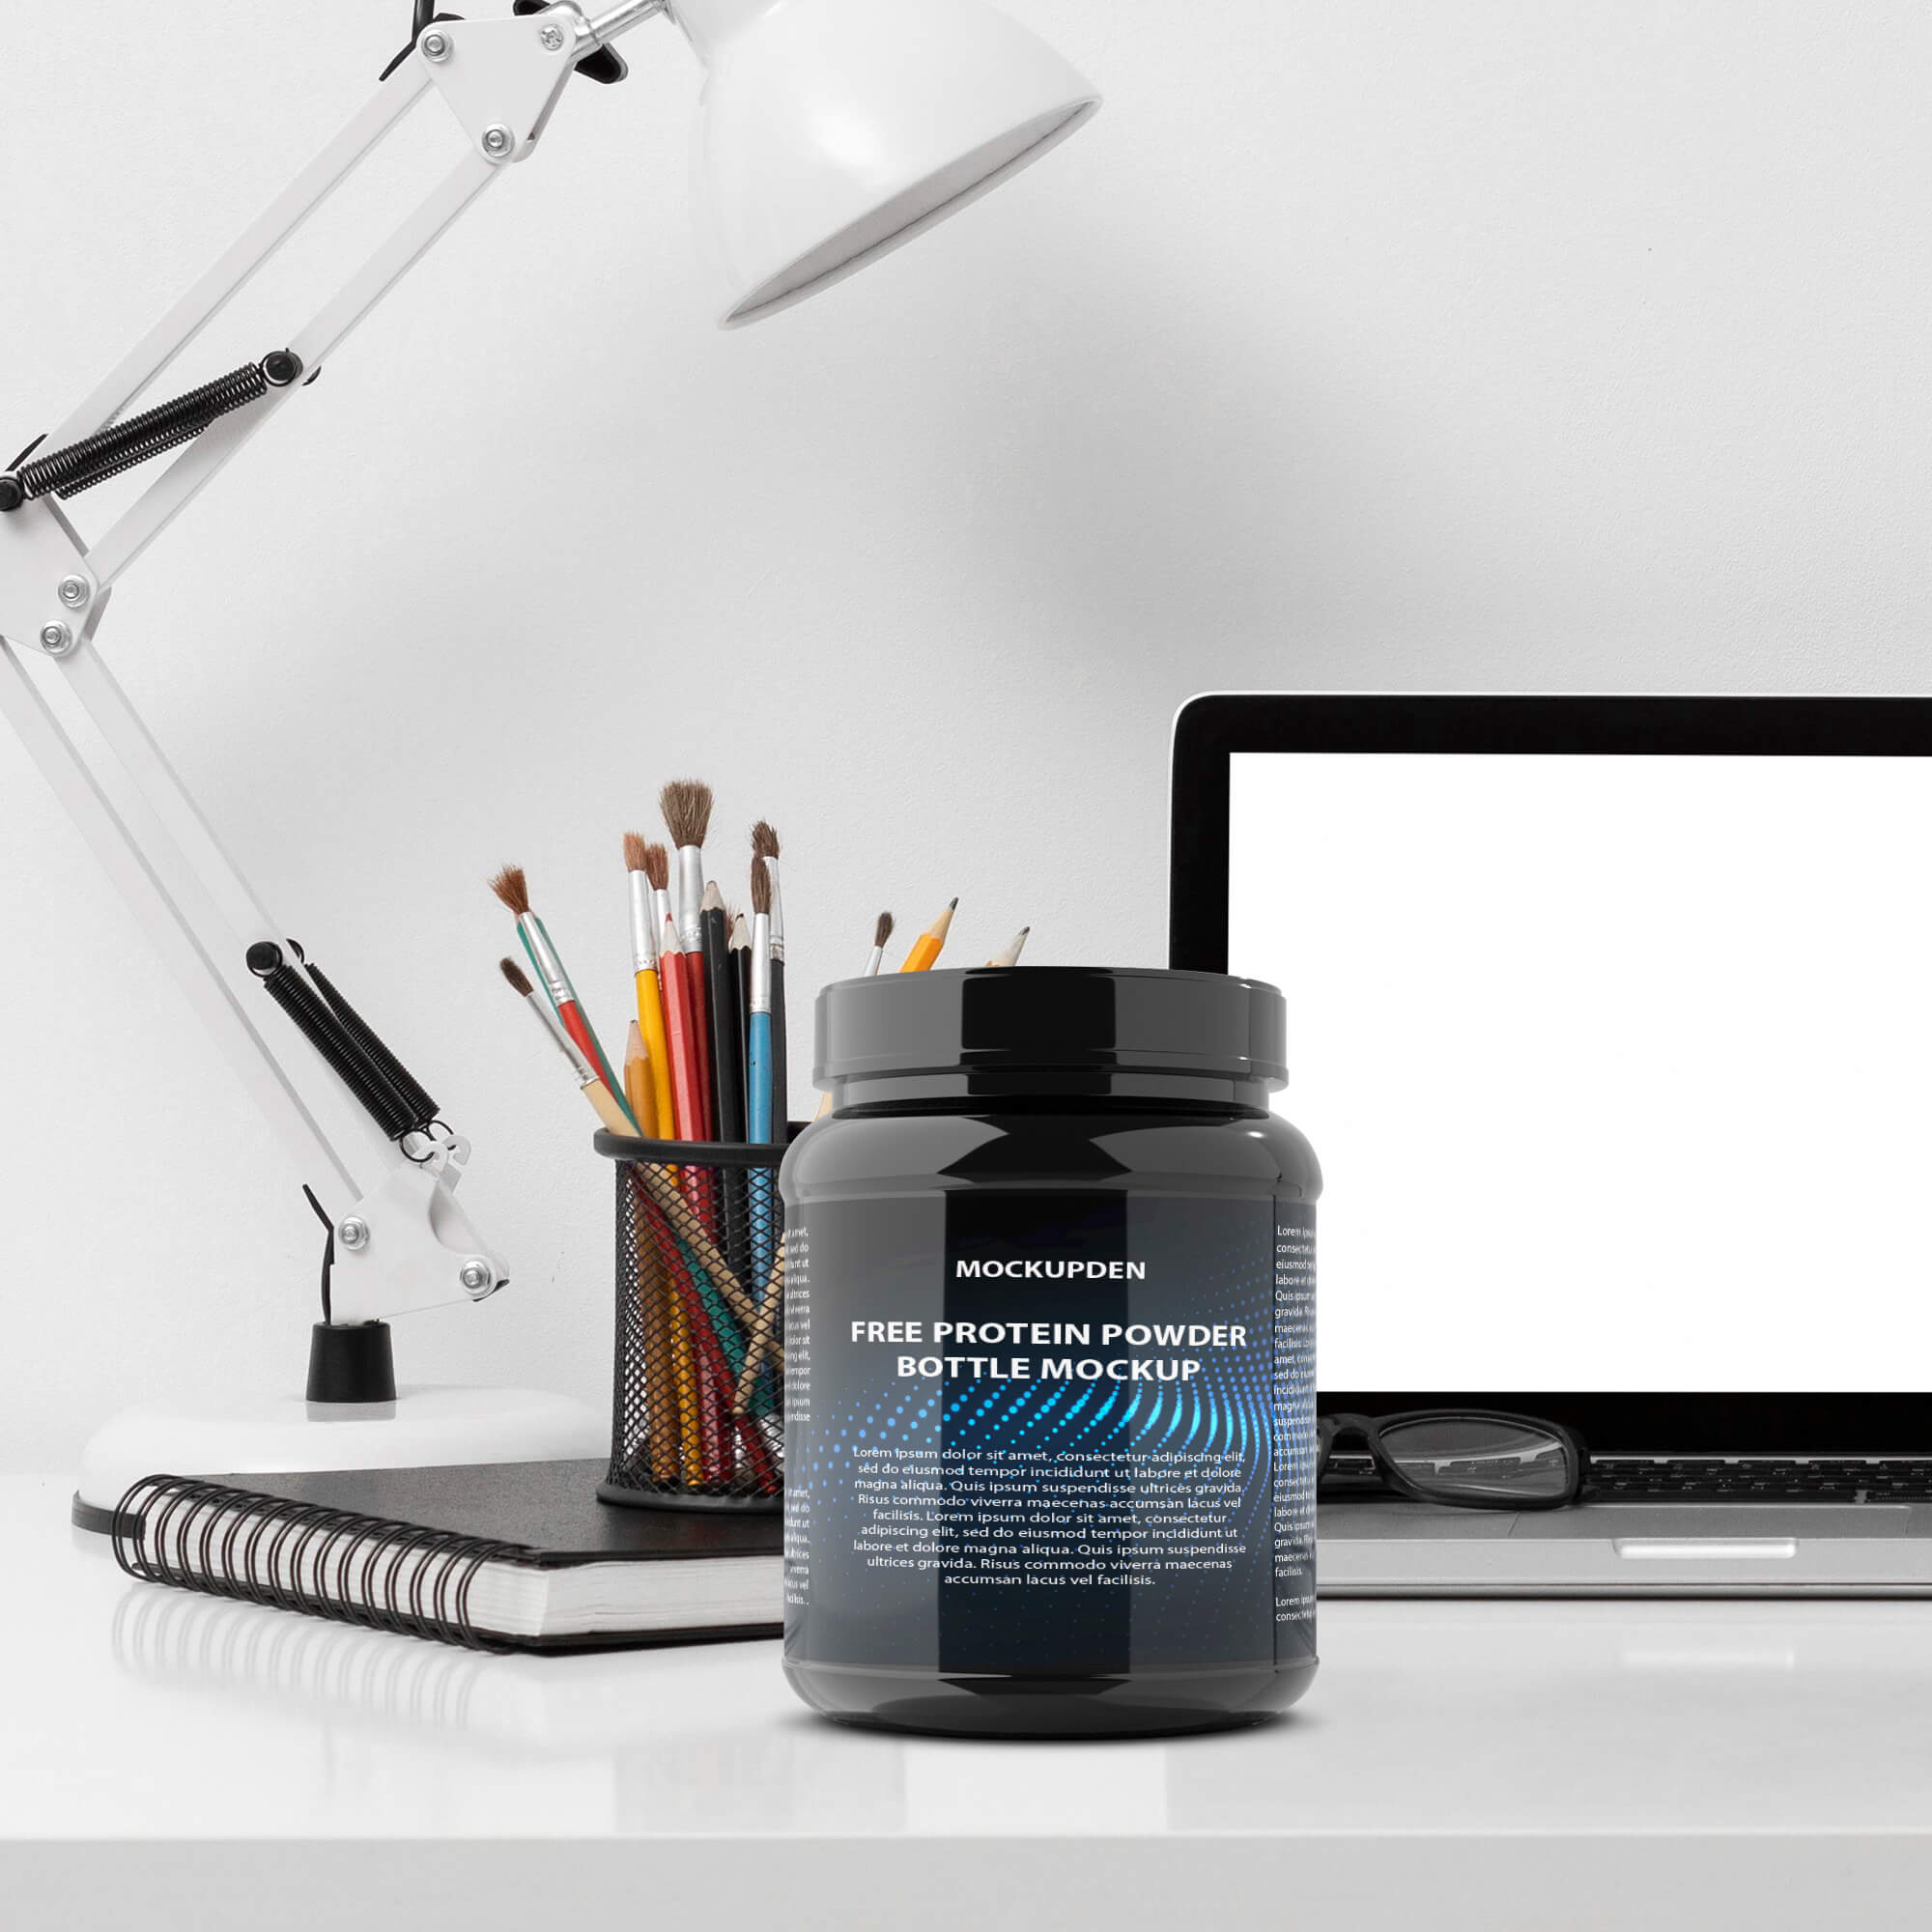 Free Protein Powder Bottle Mockup PSD Template